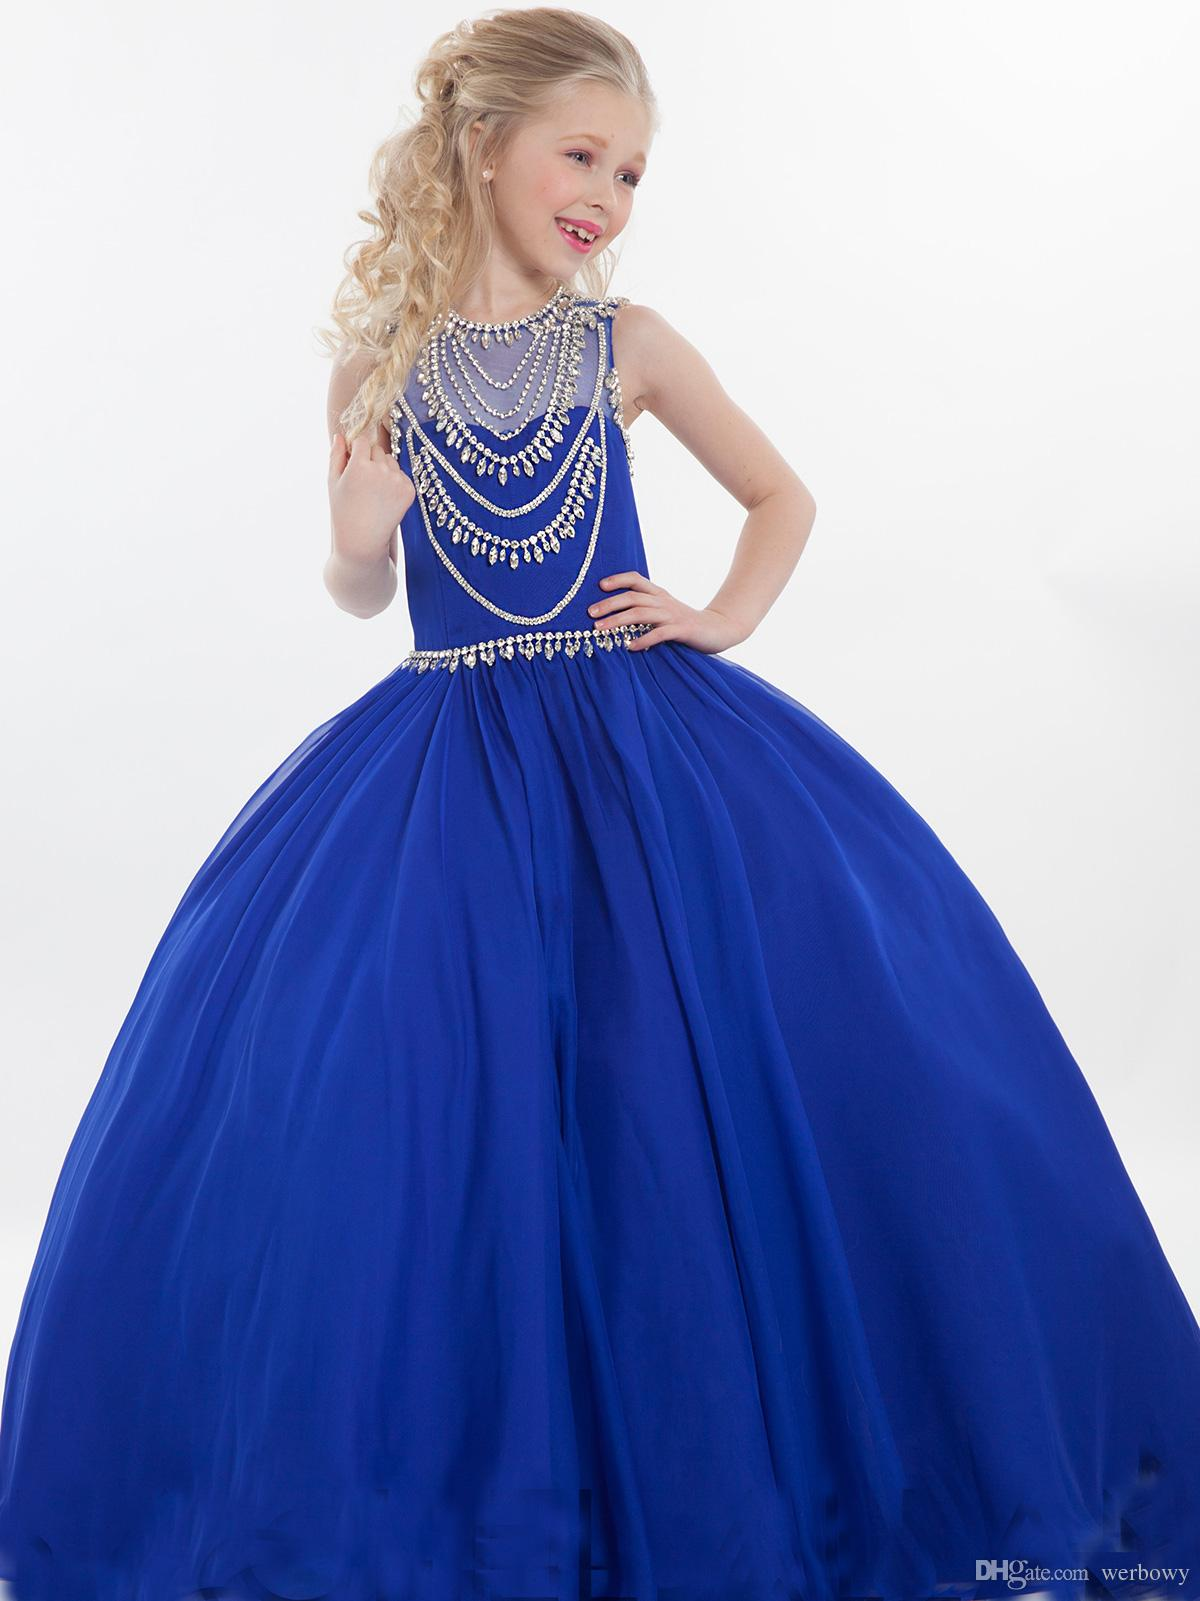 2020 Hot Sales Red Royal Blue Girls Pageant Dresses Jewel Ball Gown Floor Length Rachel Allan Evening Dresses For Wedding HY1130